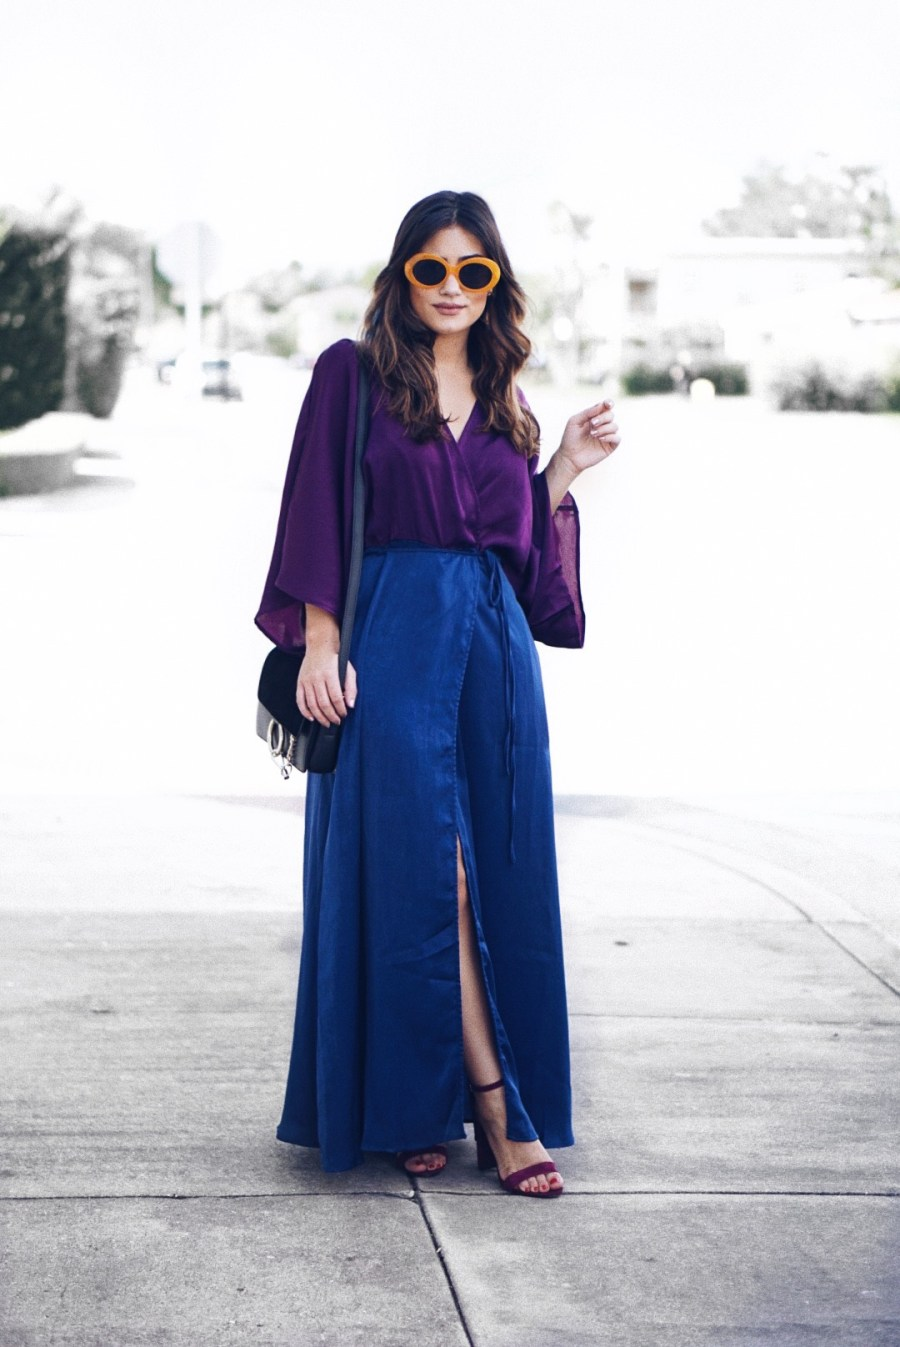 How to Wear a Statement Dress